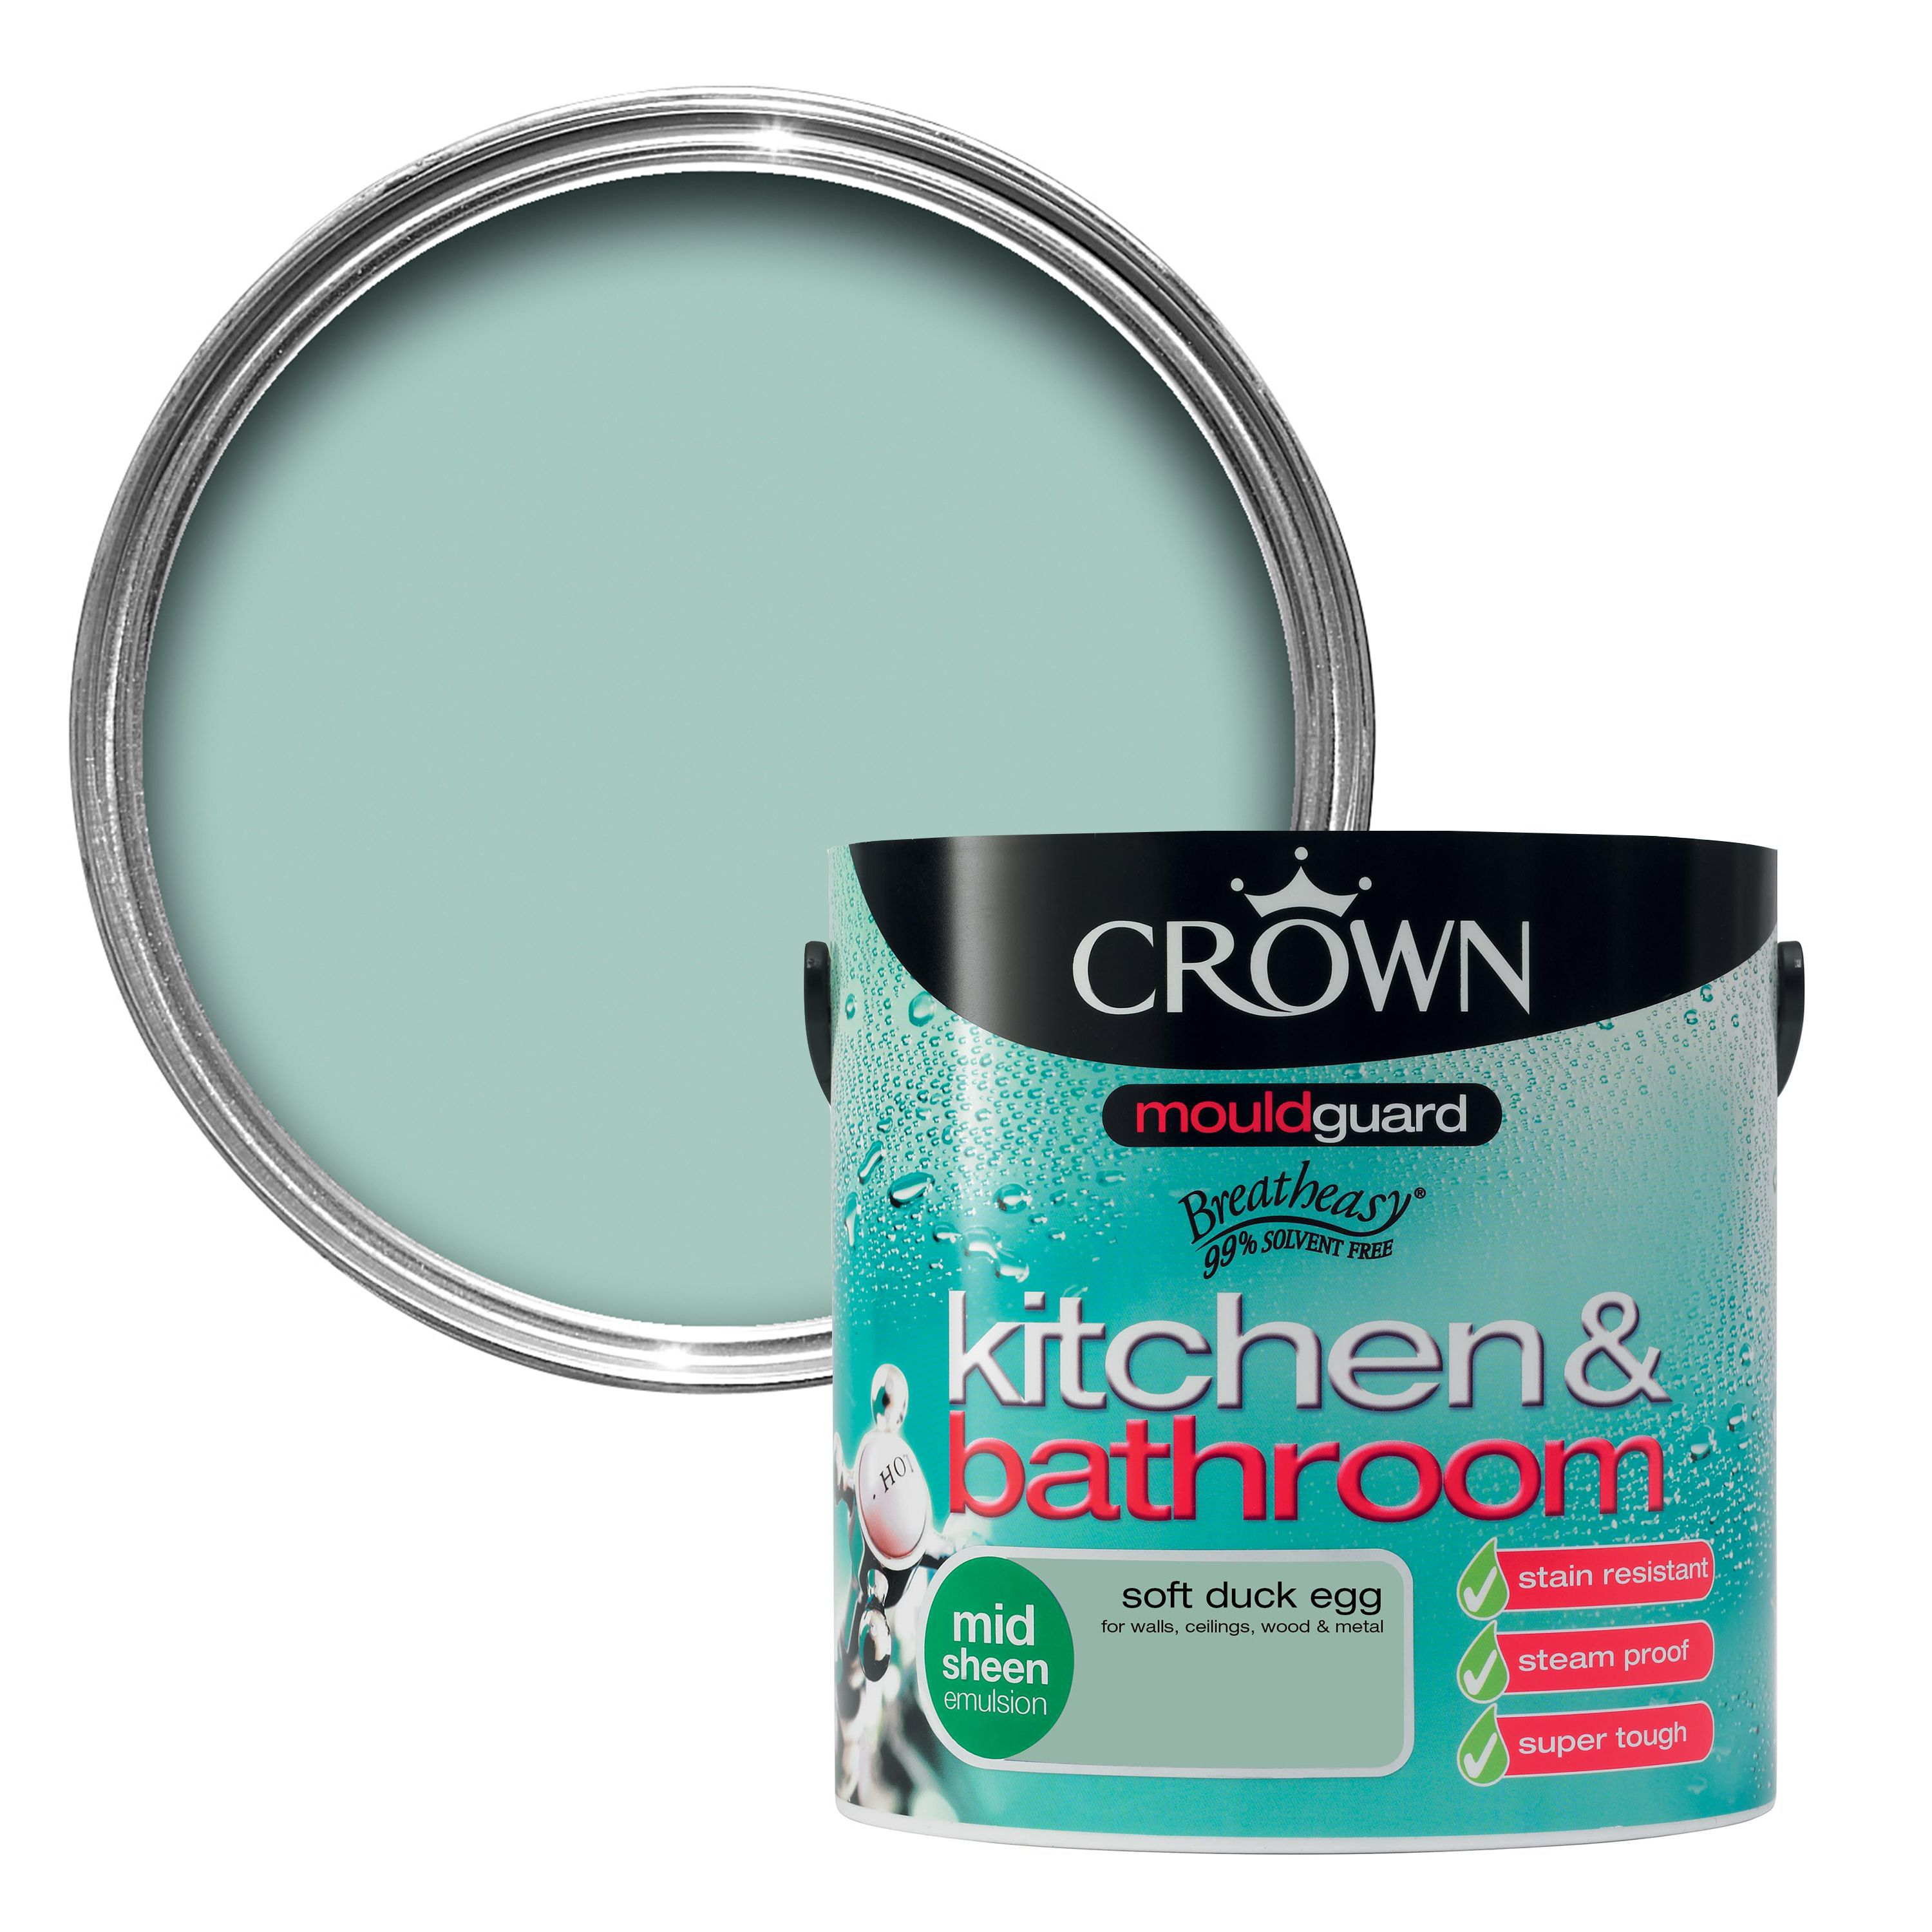 crown kitchen bathroom soft duck egg mid sheen emulsion. Black Bedroom Furniture Sets. Home Design Ideas